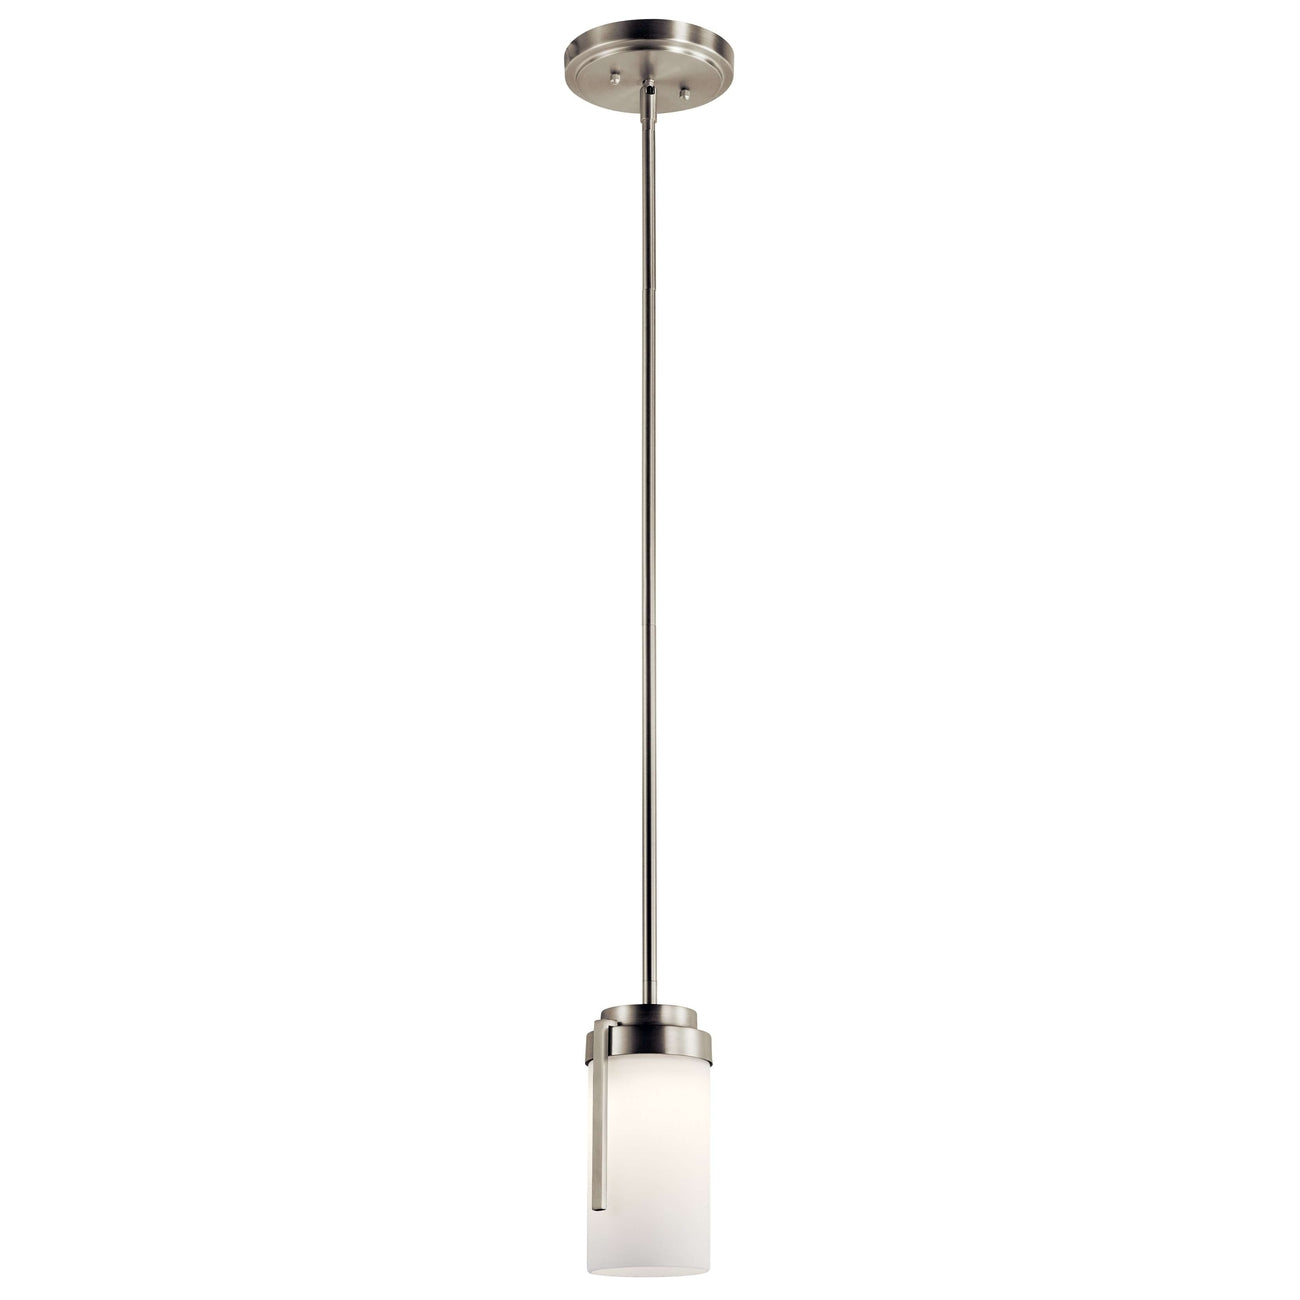 Linear Wall/Ceiling 48in LED - Brushed Nickel